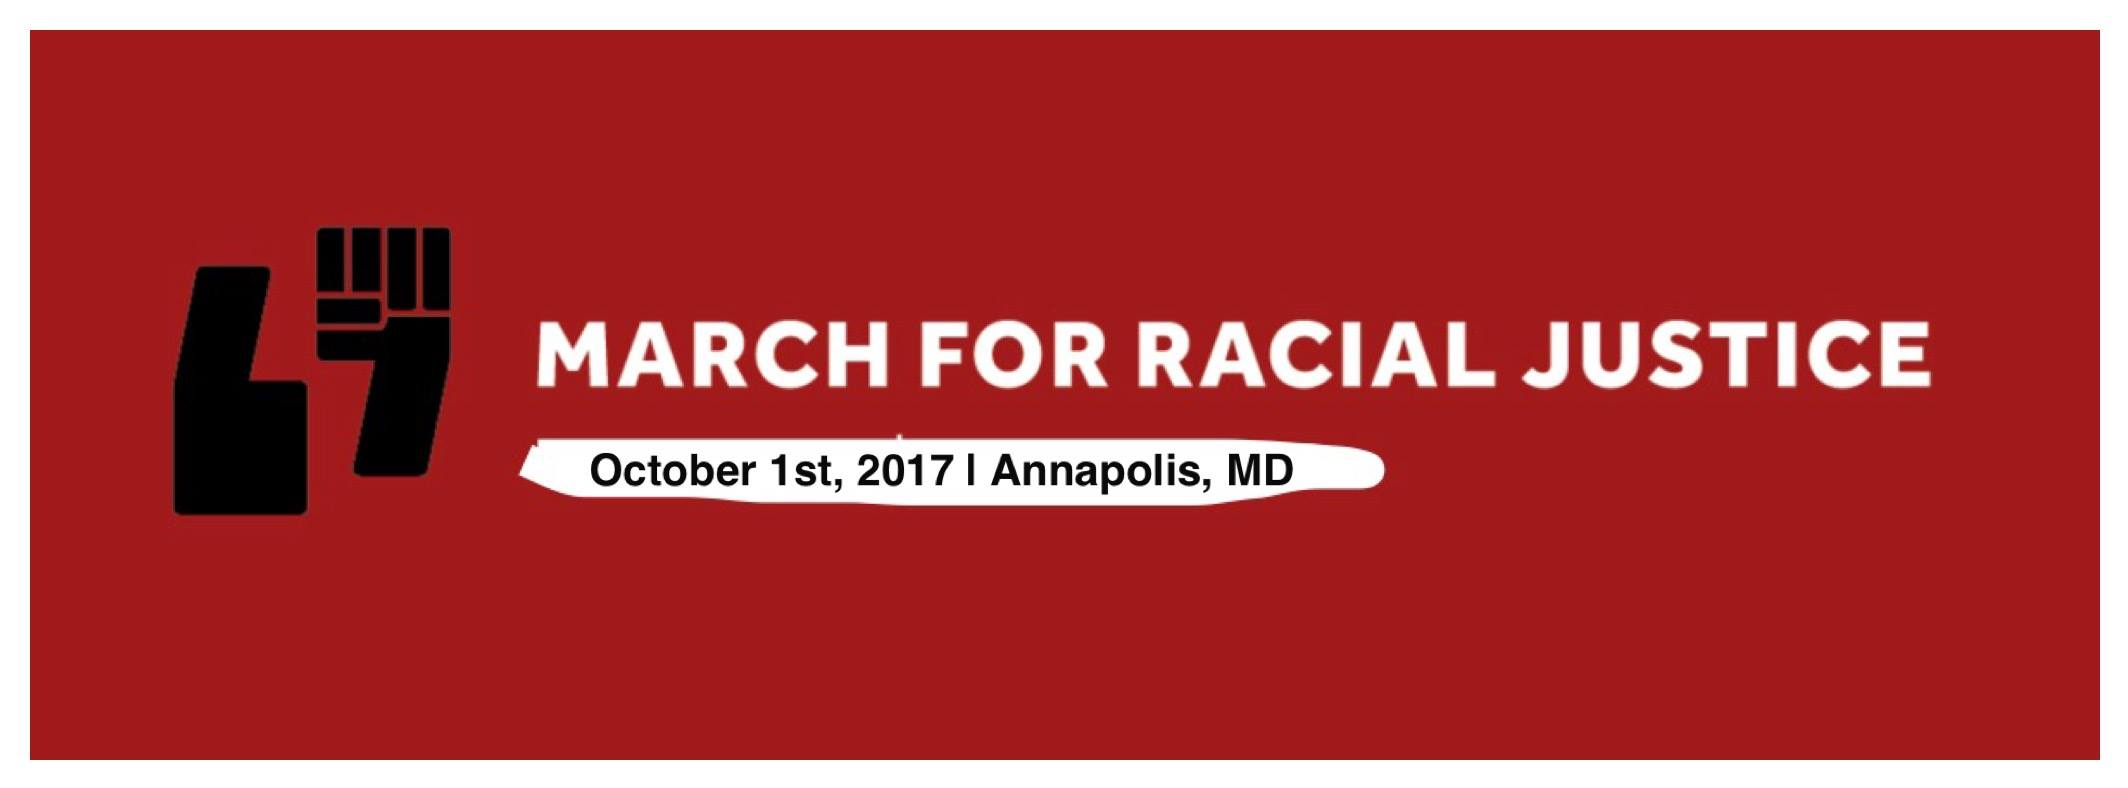 March for Racial Justice in Annapolis